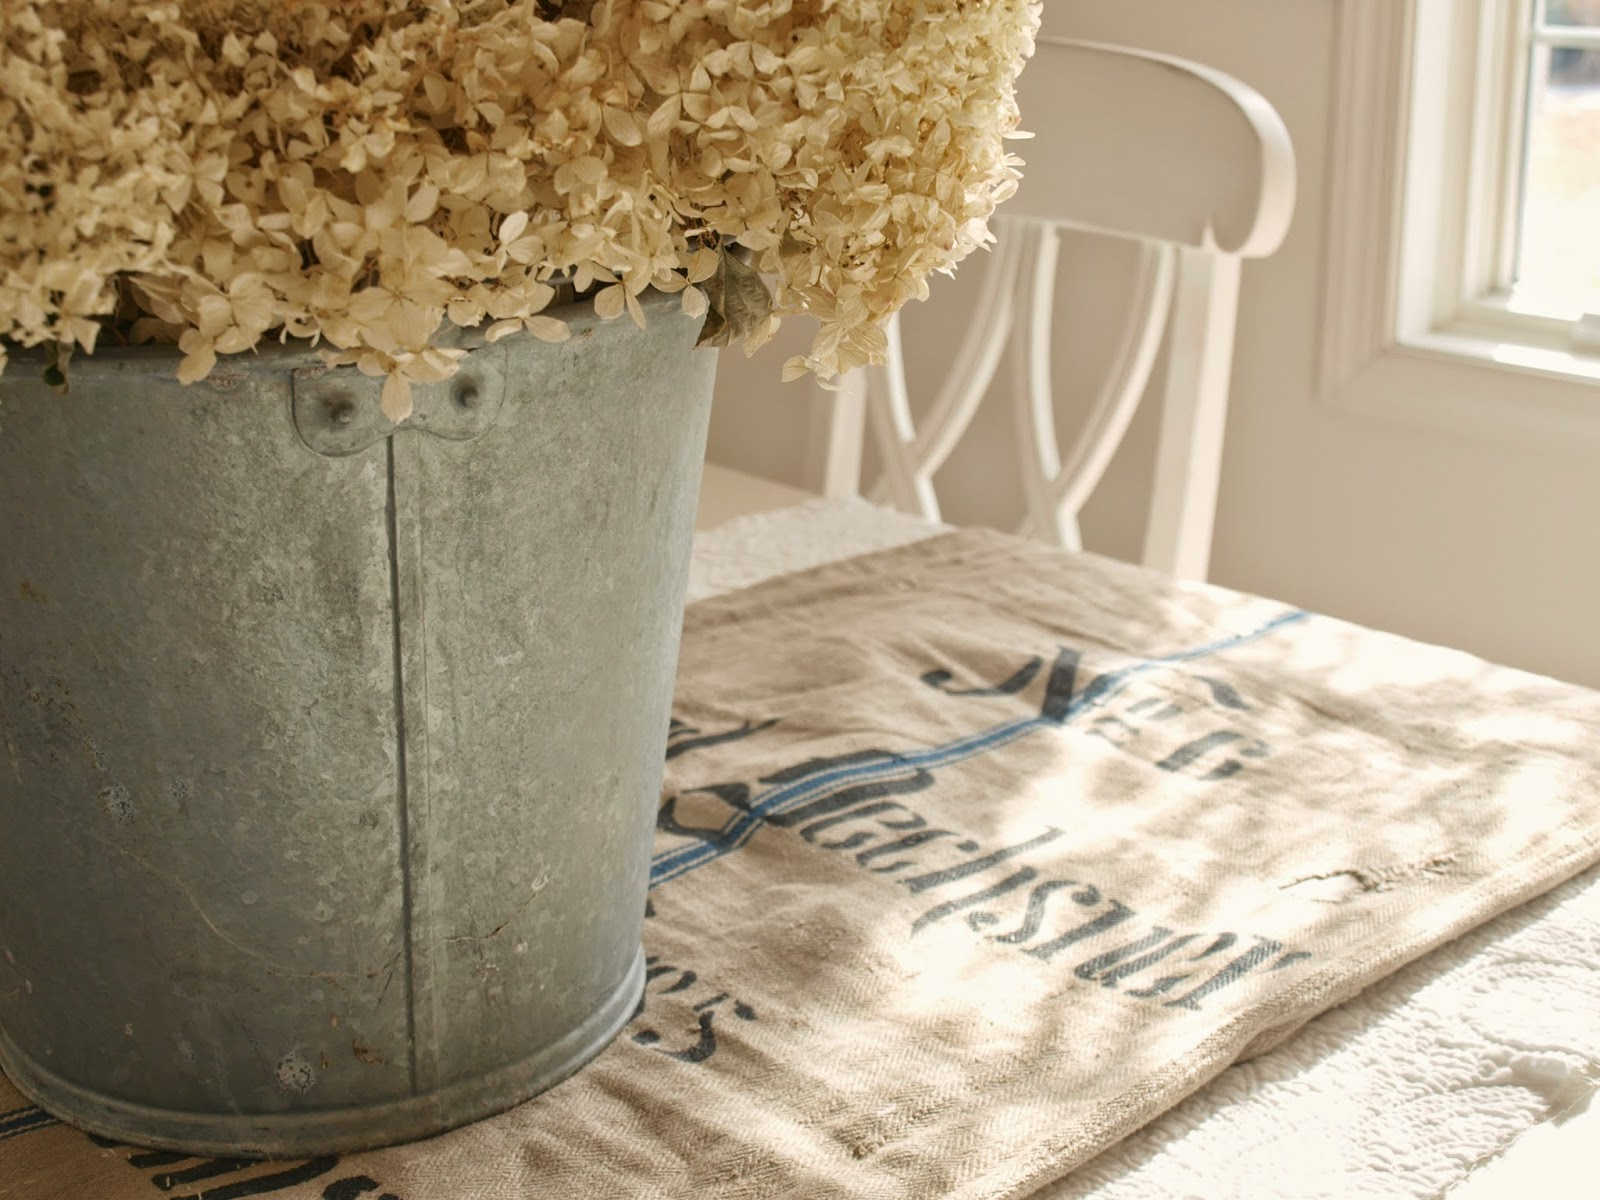 Antique grain sack as table runner in Nordic French dining room by Hello Lovely Studio. #grainsack #frenchcountry #frenchfarmhouse #galvanized #hydrange #diningroom